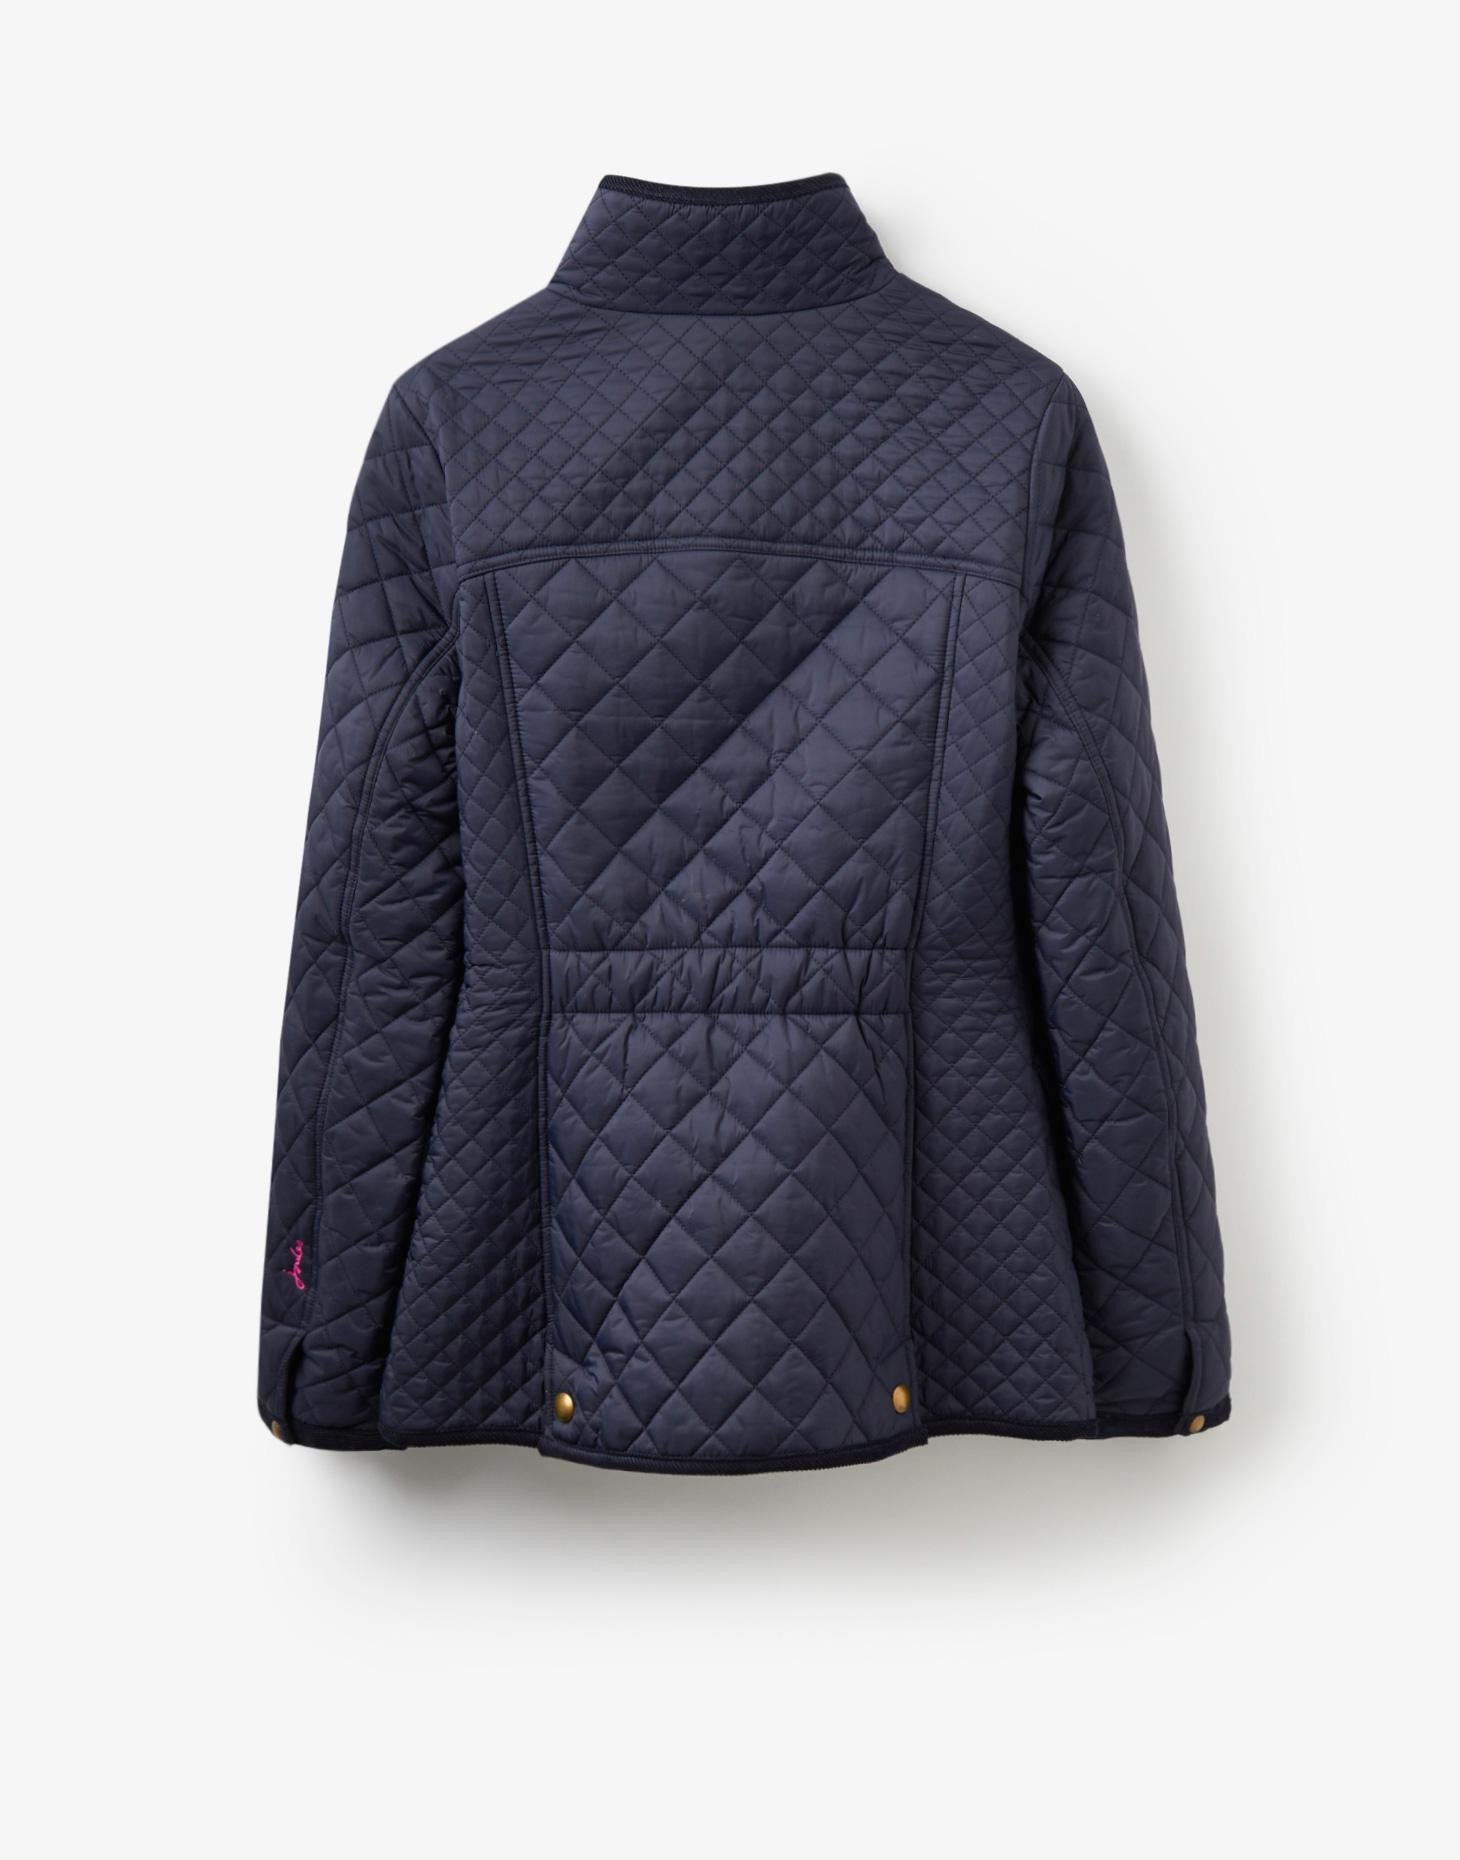 Joules Newdale Jacket - Navy by Joules from THE LUCKY KNOT - 4